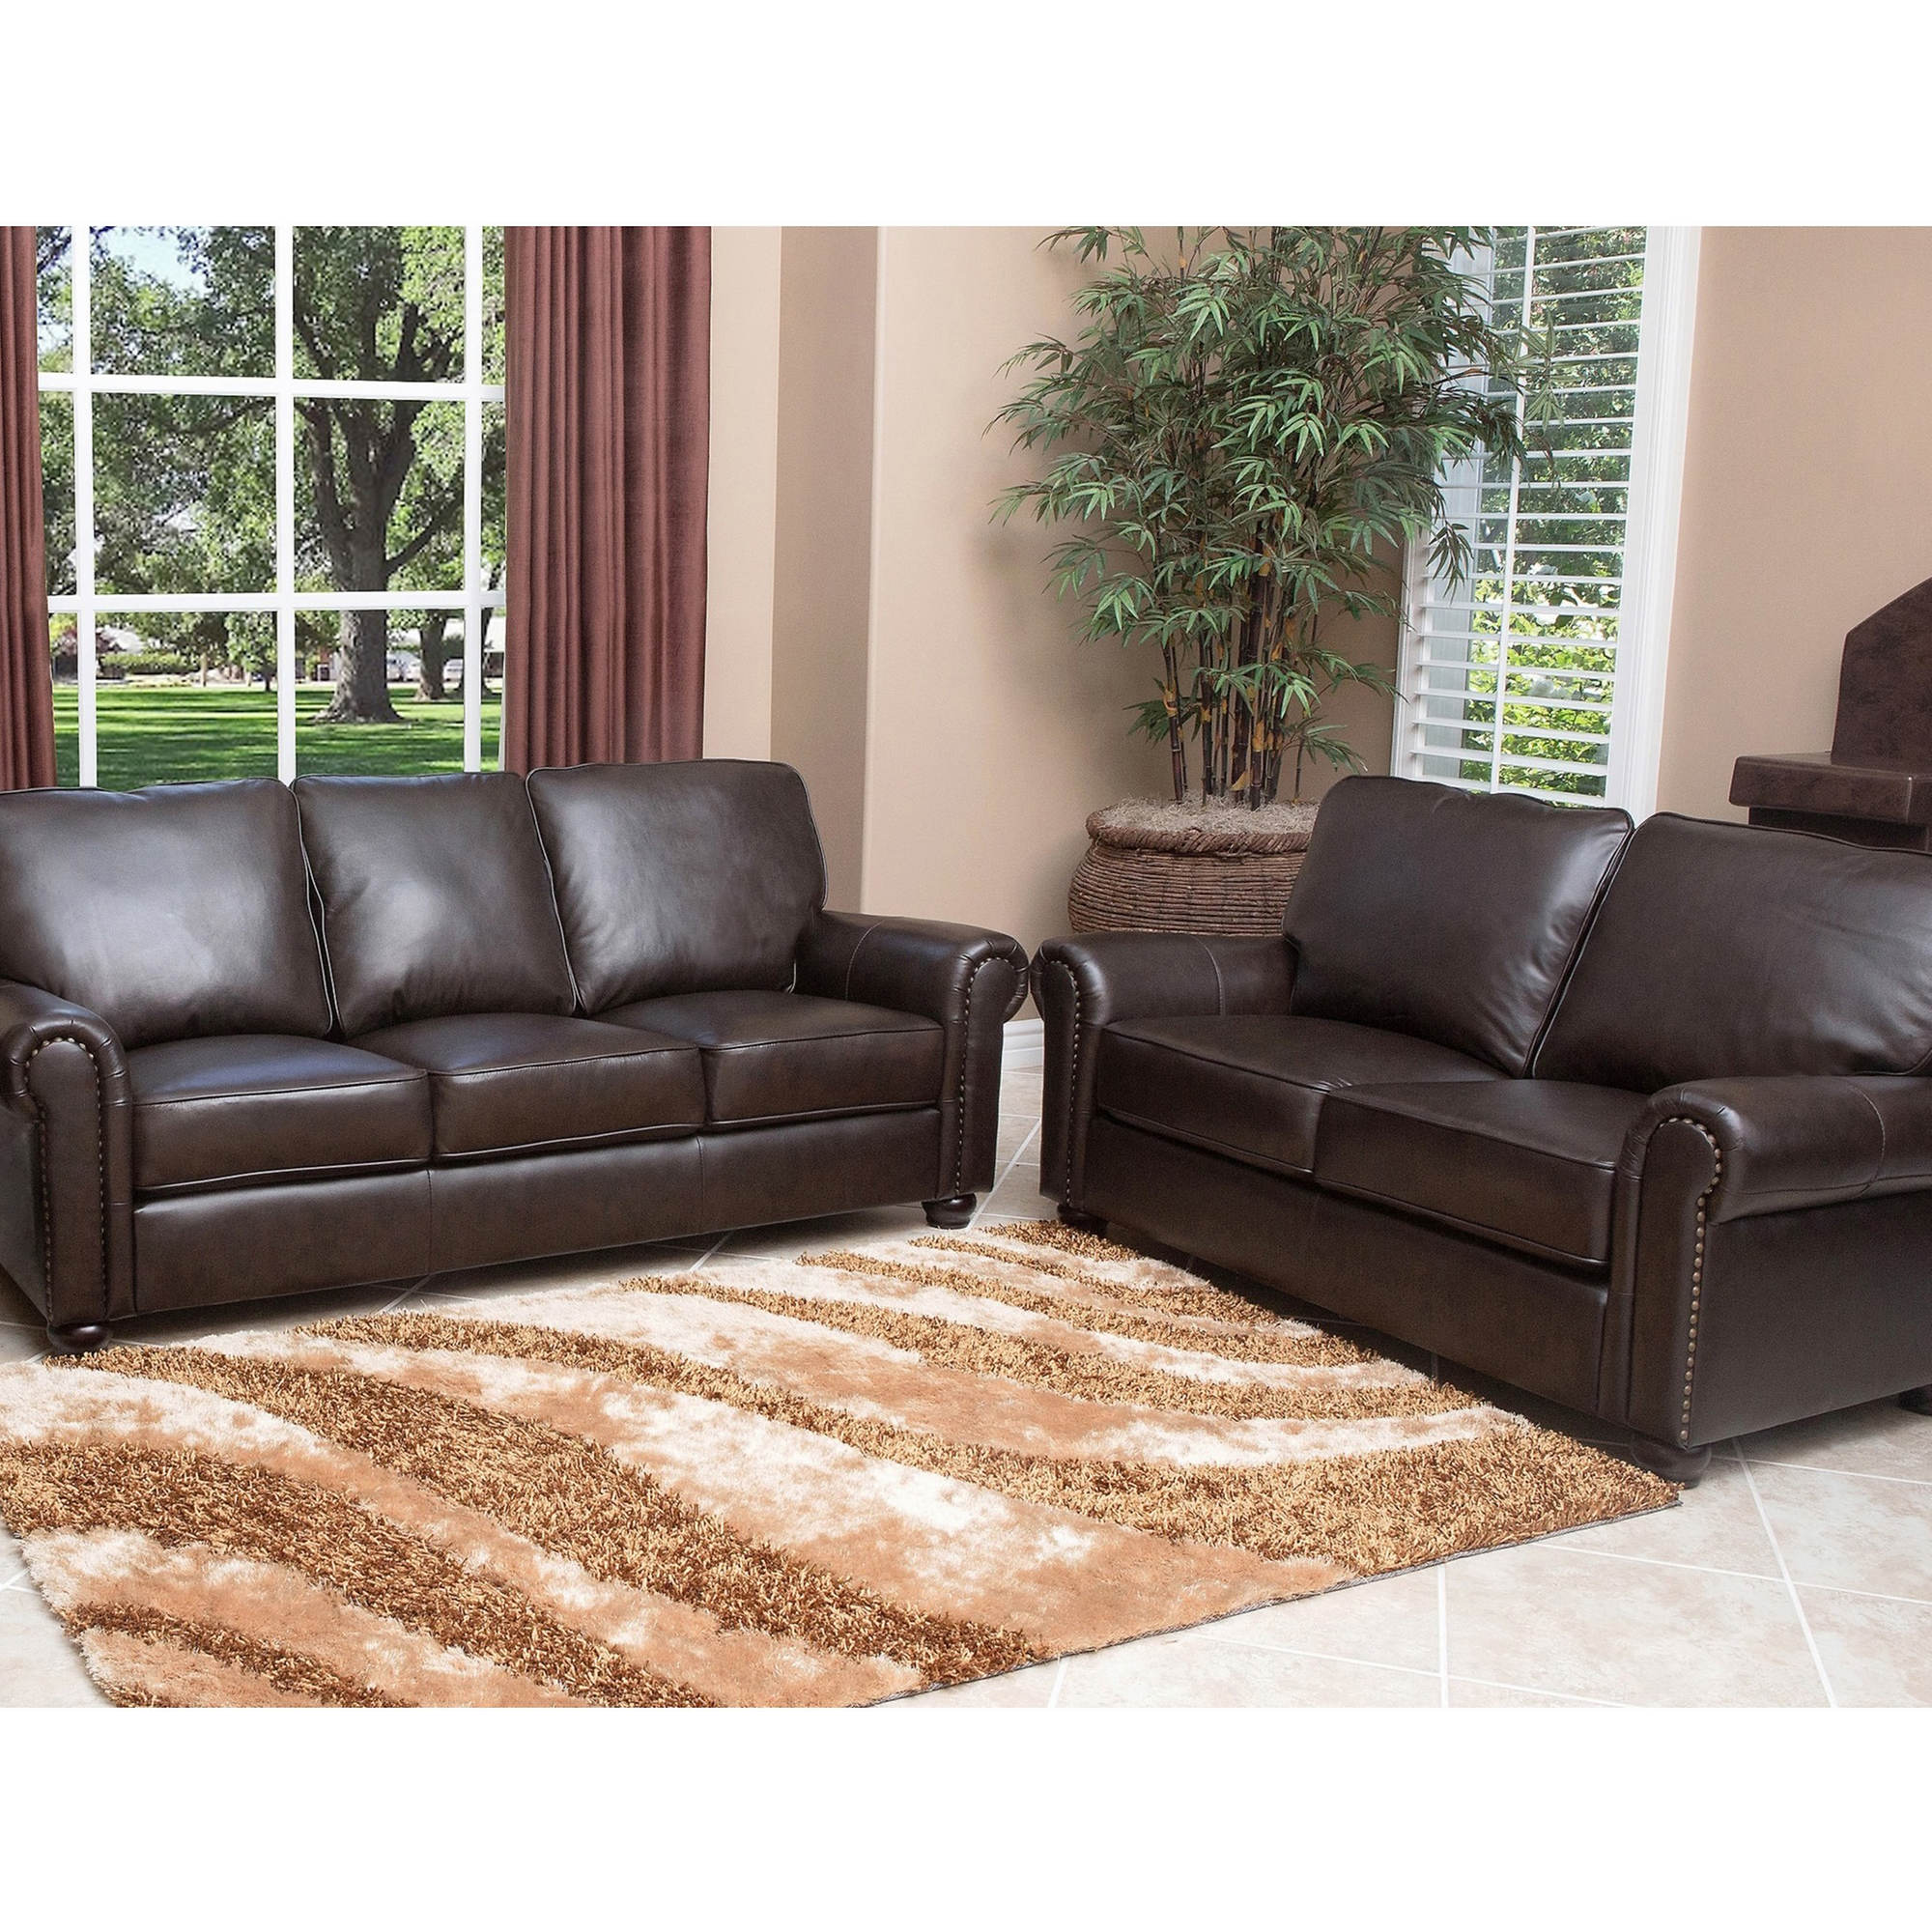 Shop Bryce White Italian Leather Sofa And Two Chairs: Abbyson Living Bedford 2-Pc. Top-Grain Italian Leather